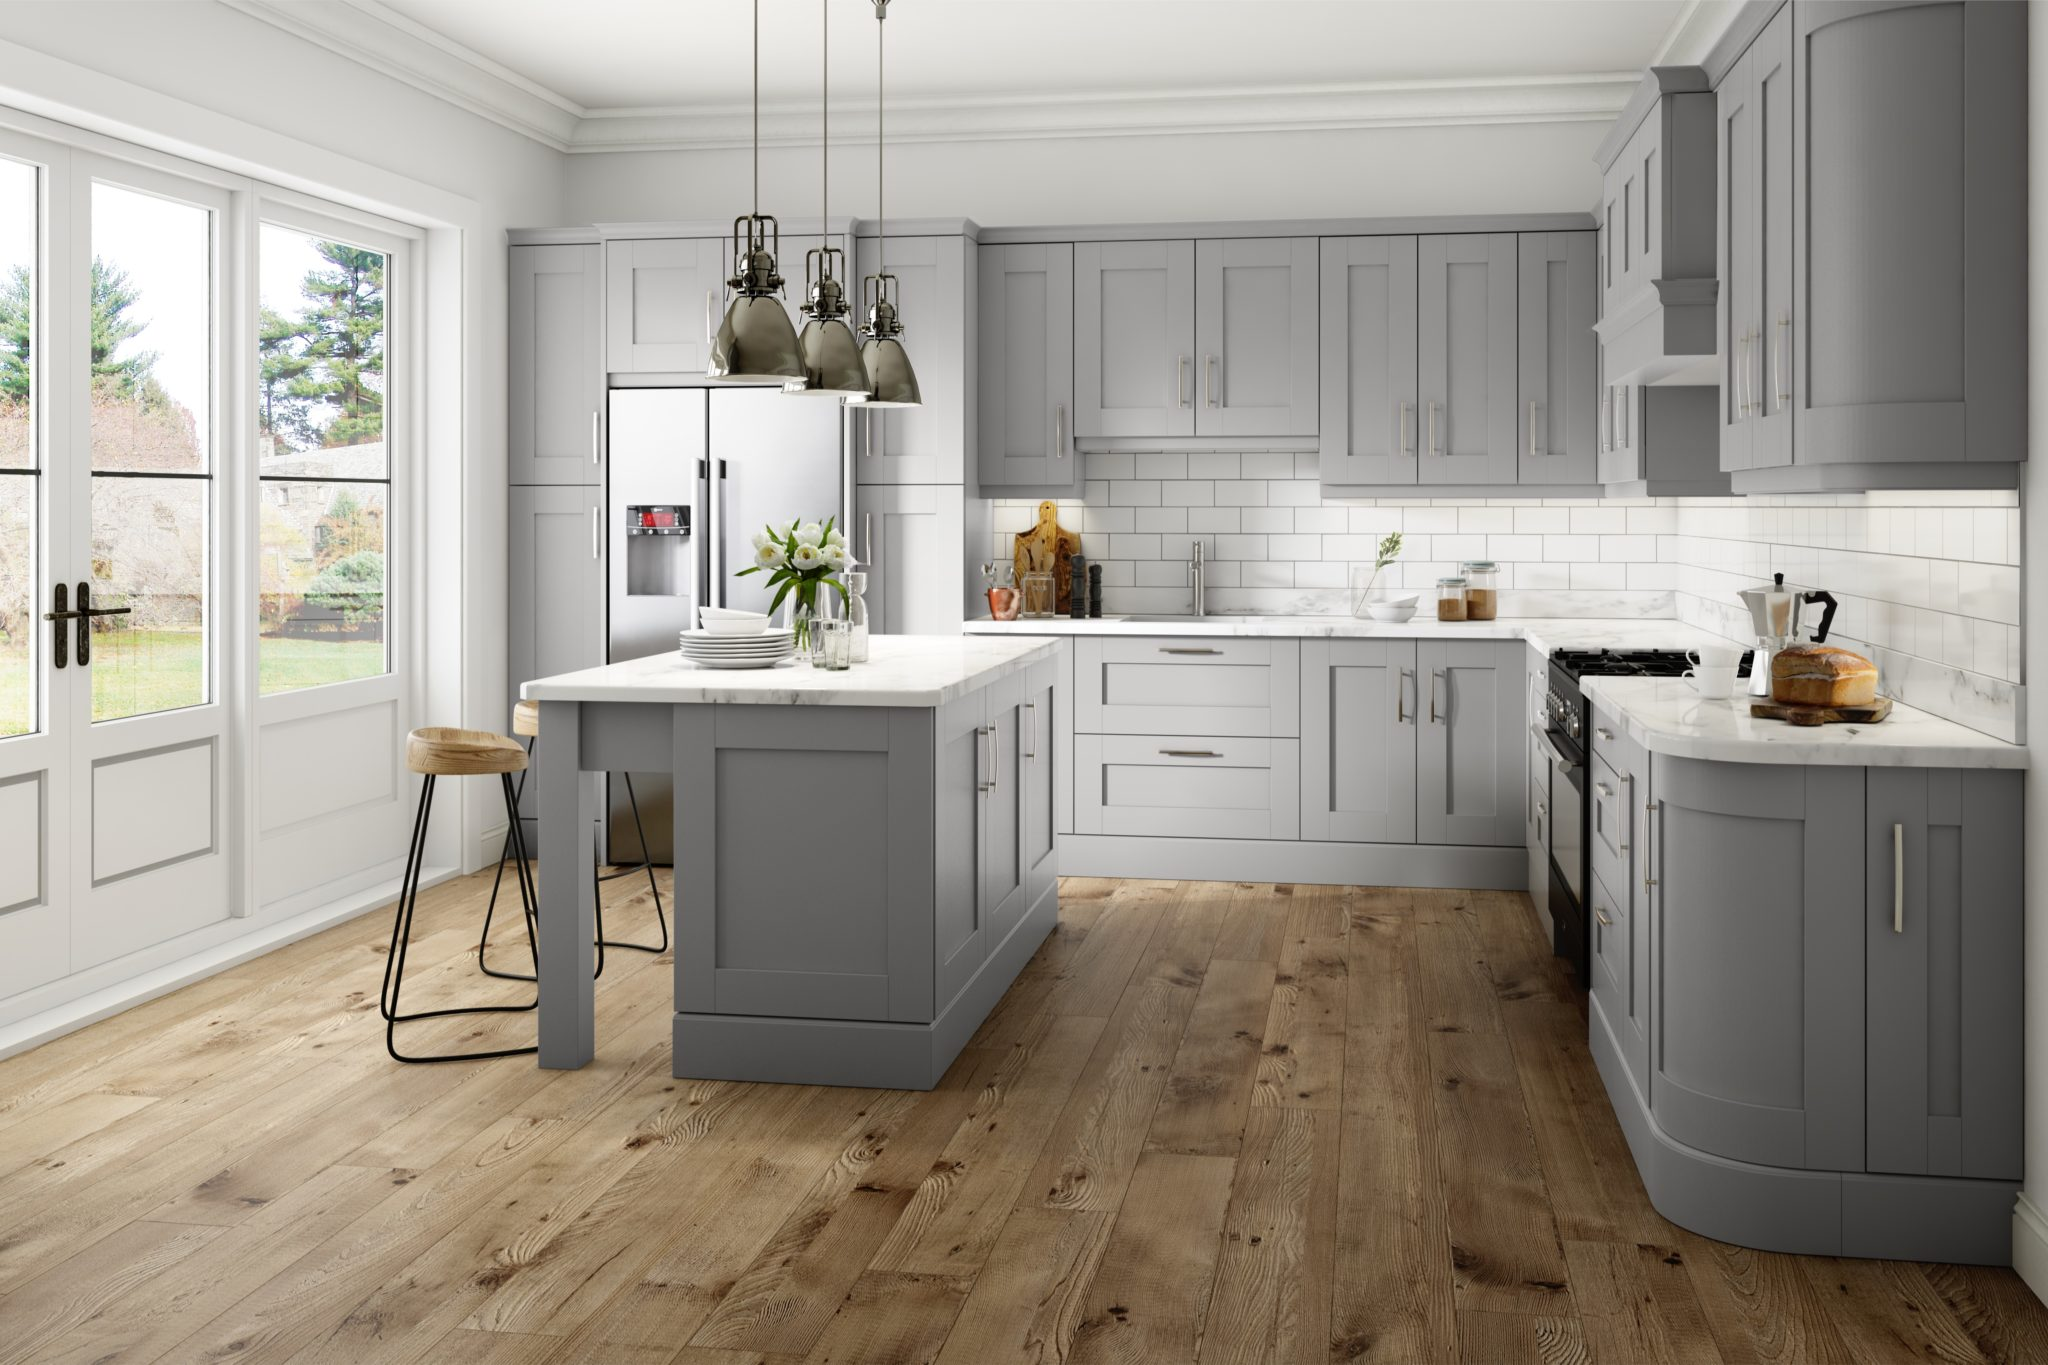 Made to measure kitchens kitchen door replacement bespoke kitchens think kitchens Kitchen design light grey